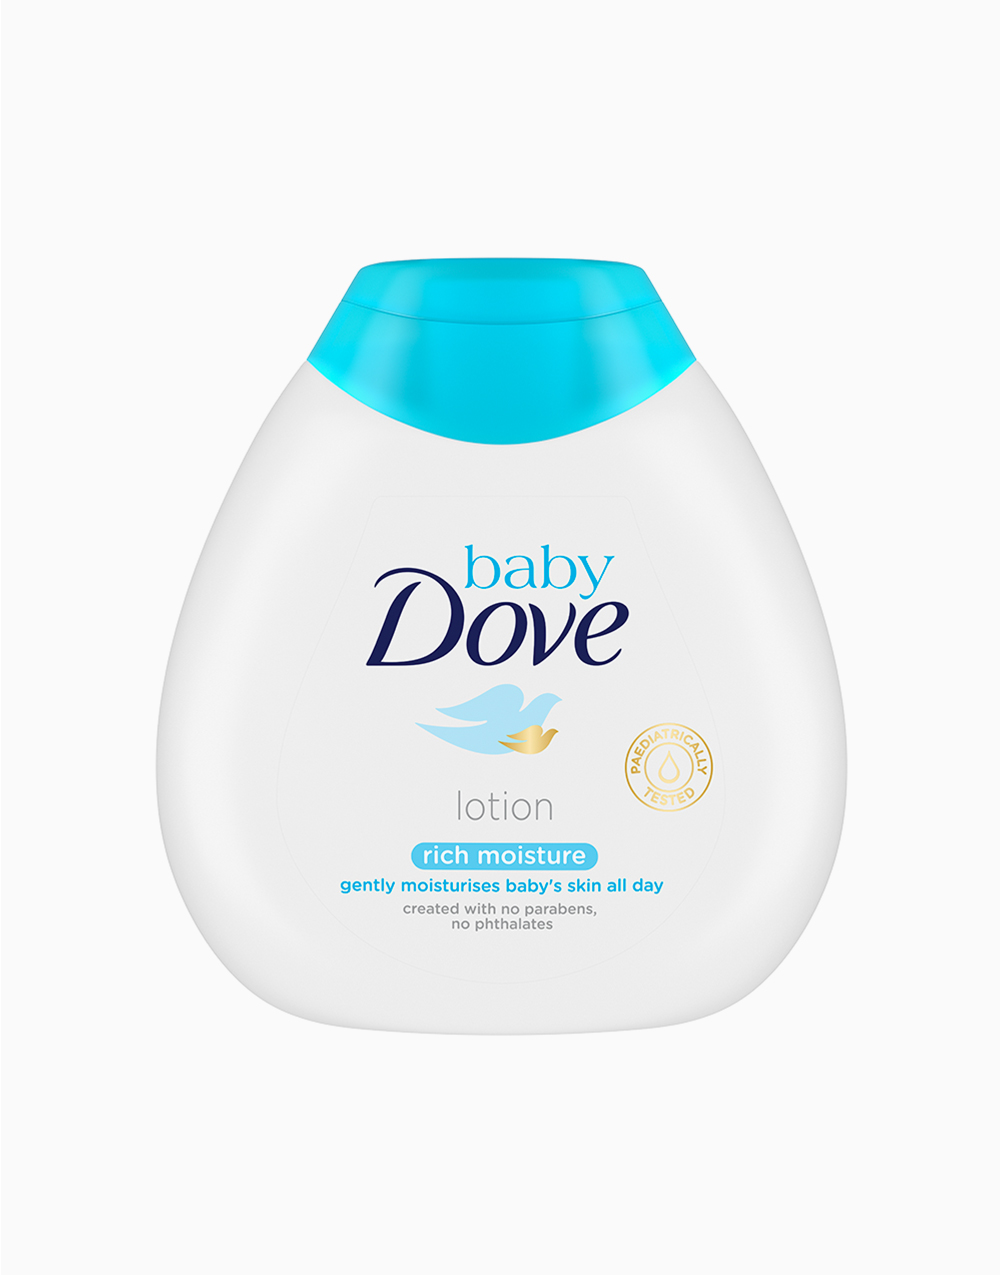 Baby Dove Nourishing Baby Lotion Rich Moisture 200ml by Baby Dove